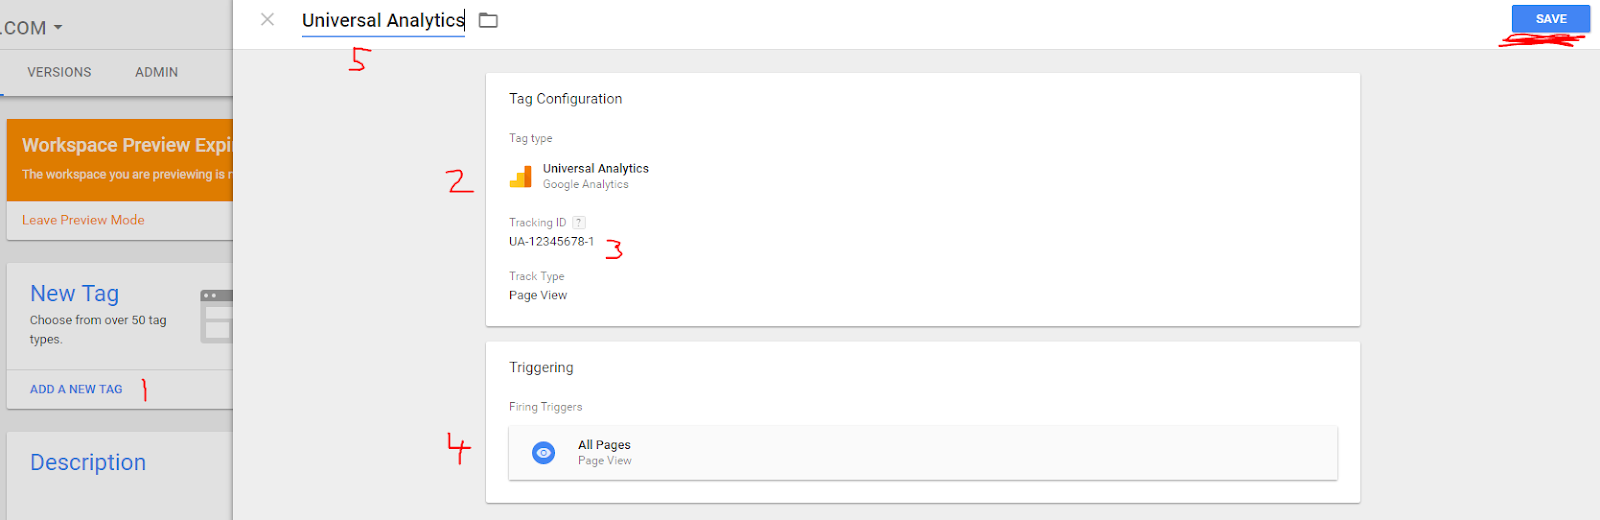 Screenshot of Google Tag Manager tag configuration window